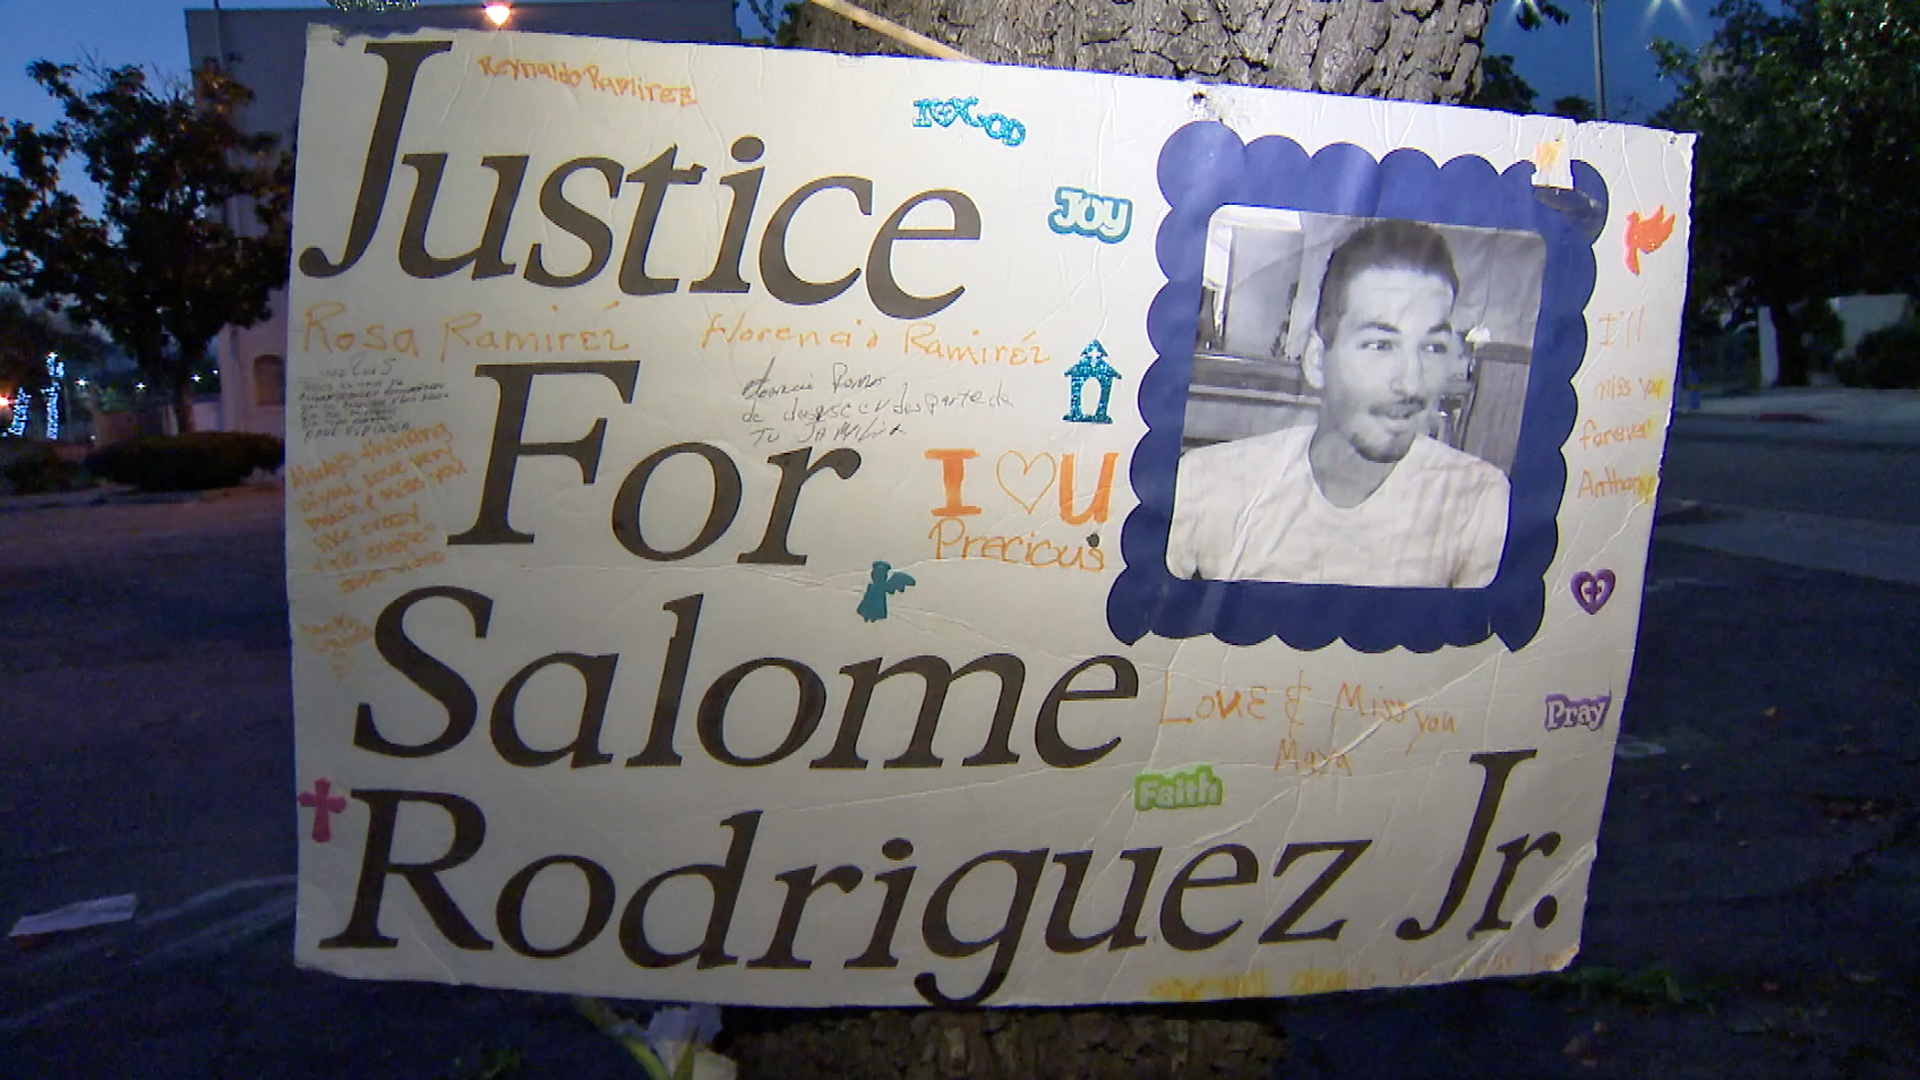 A poster for Salome Rodriguez Jr. is displayed during a vigil on March 13, 2019, the fourth anniversary of his death in Pomona. (Credit: KTLA)